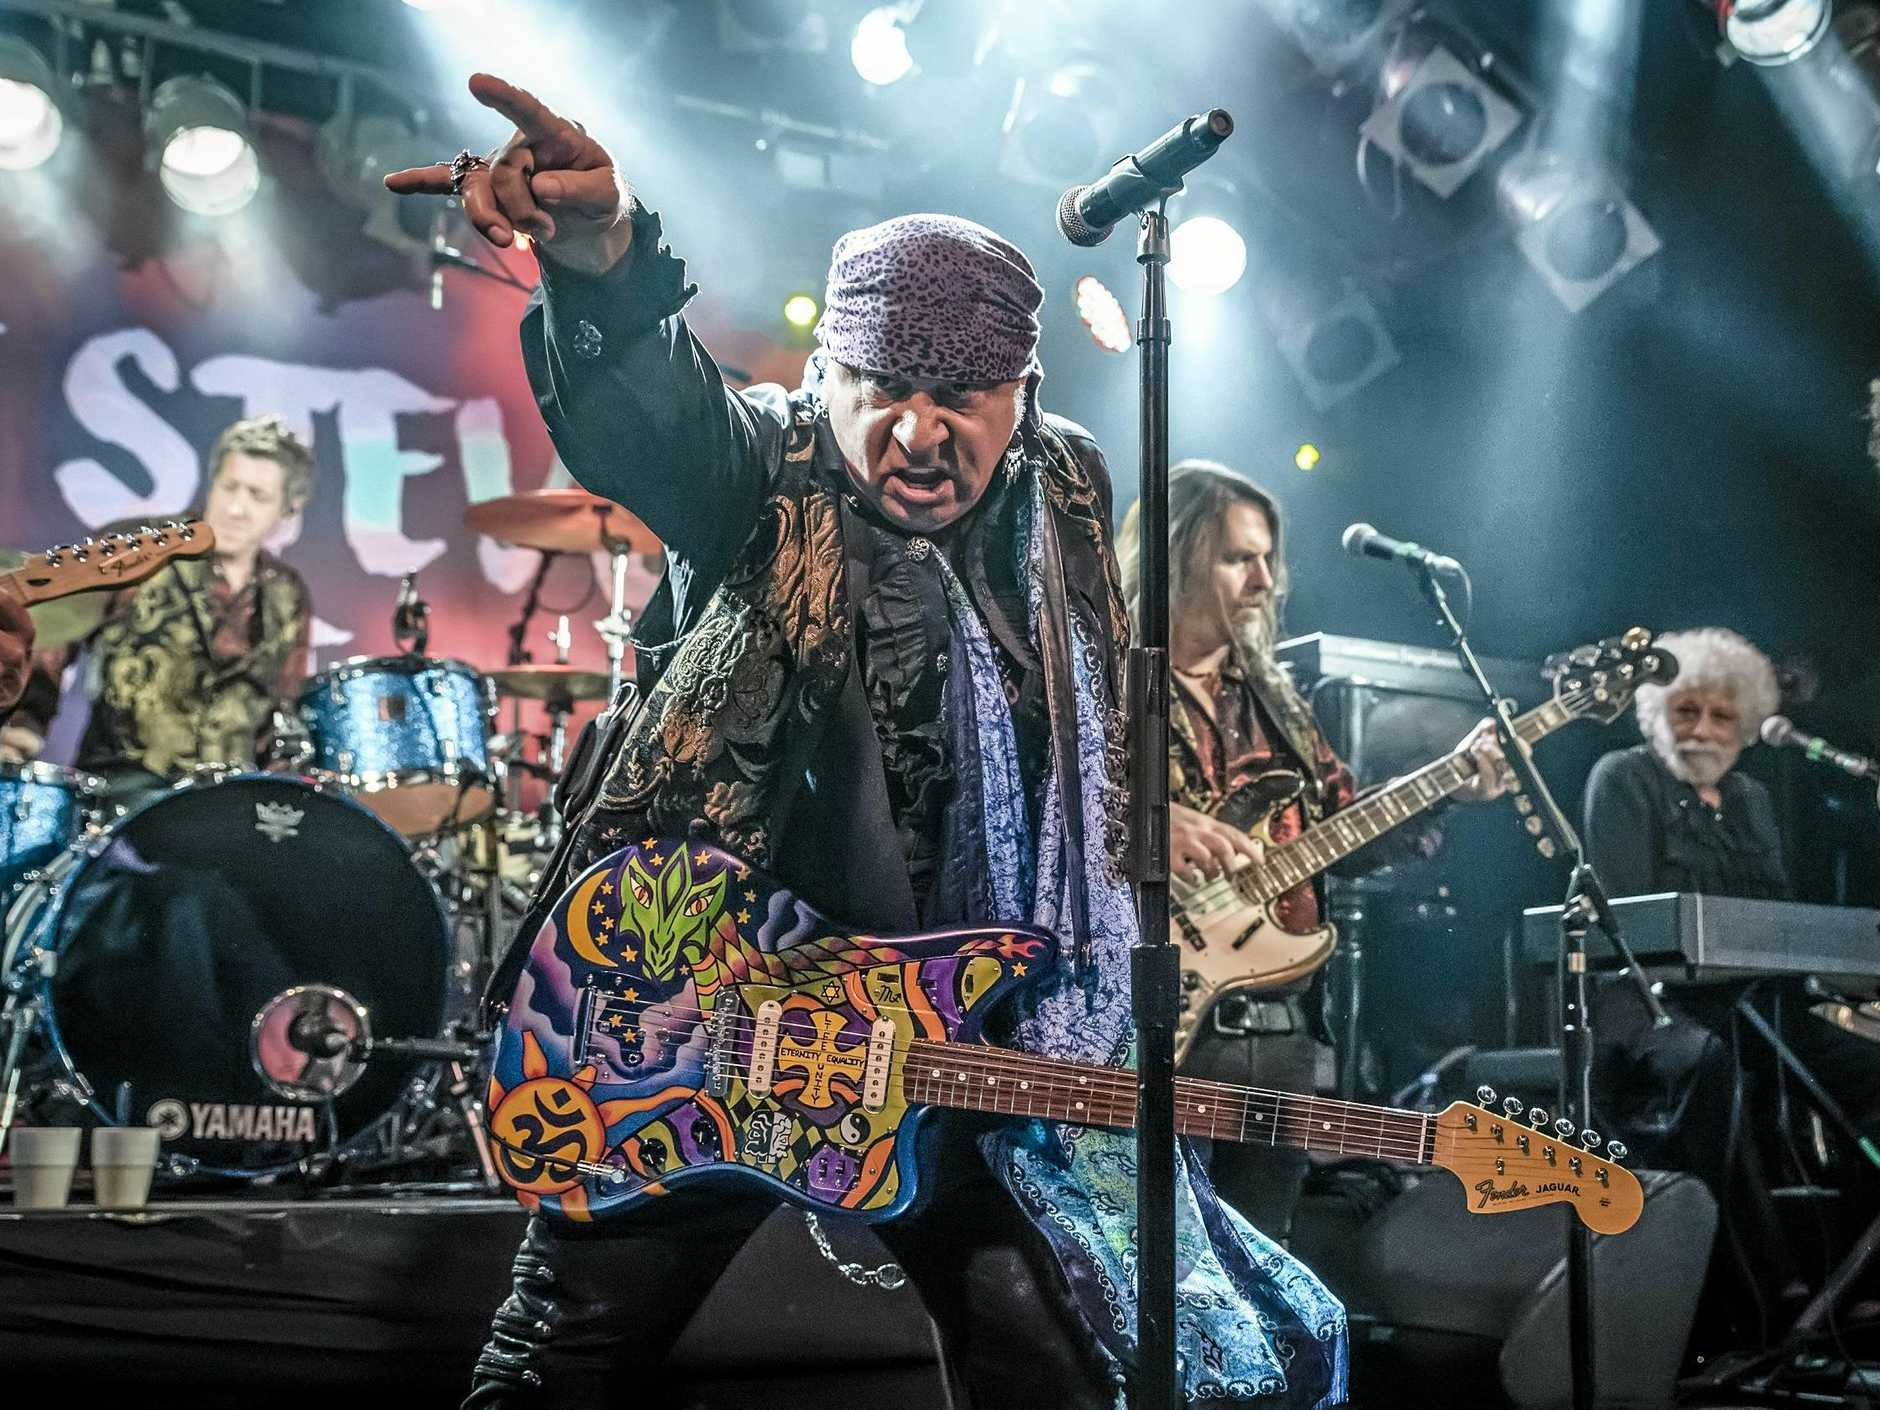 LEGENDARY: Steven Van Zandt will bring his band Little Steven and The Disciples of Soul.